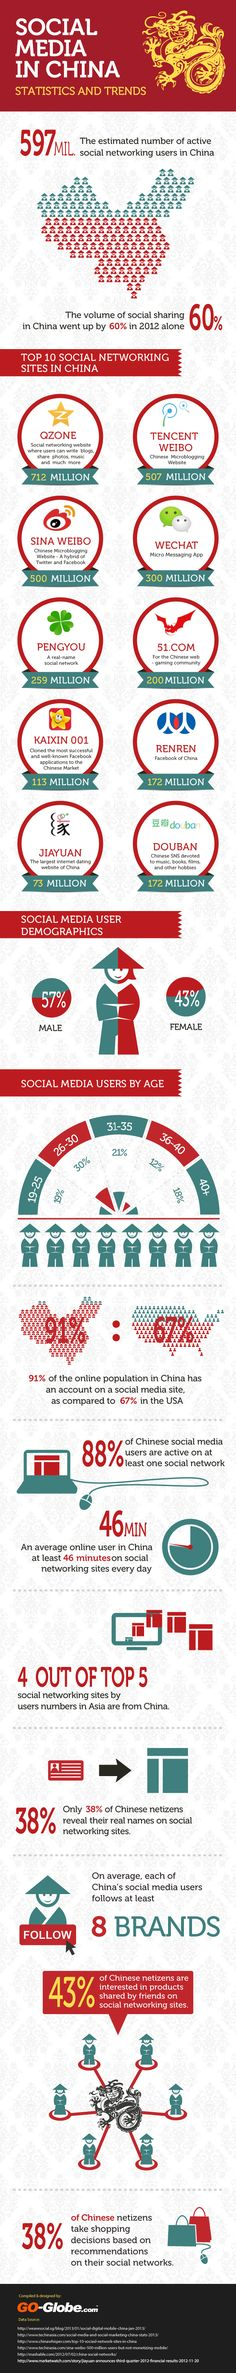 #SocialMedia in #China Statistics and Trends. #Infographic